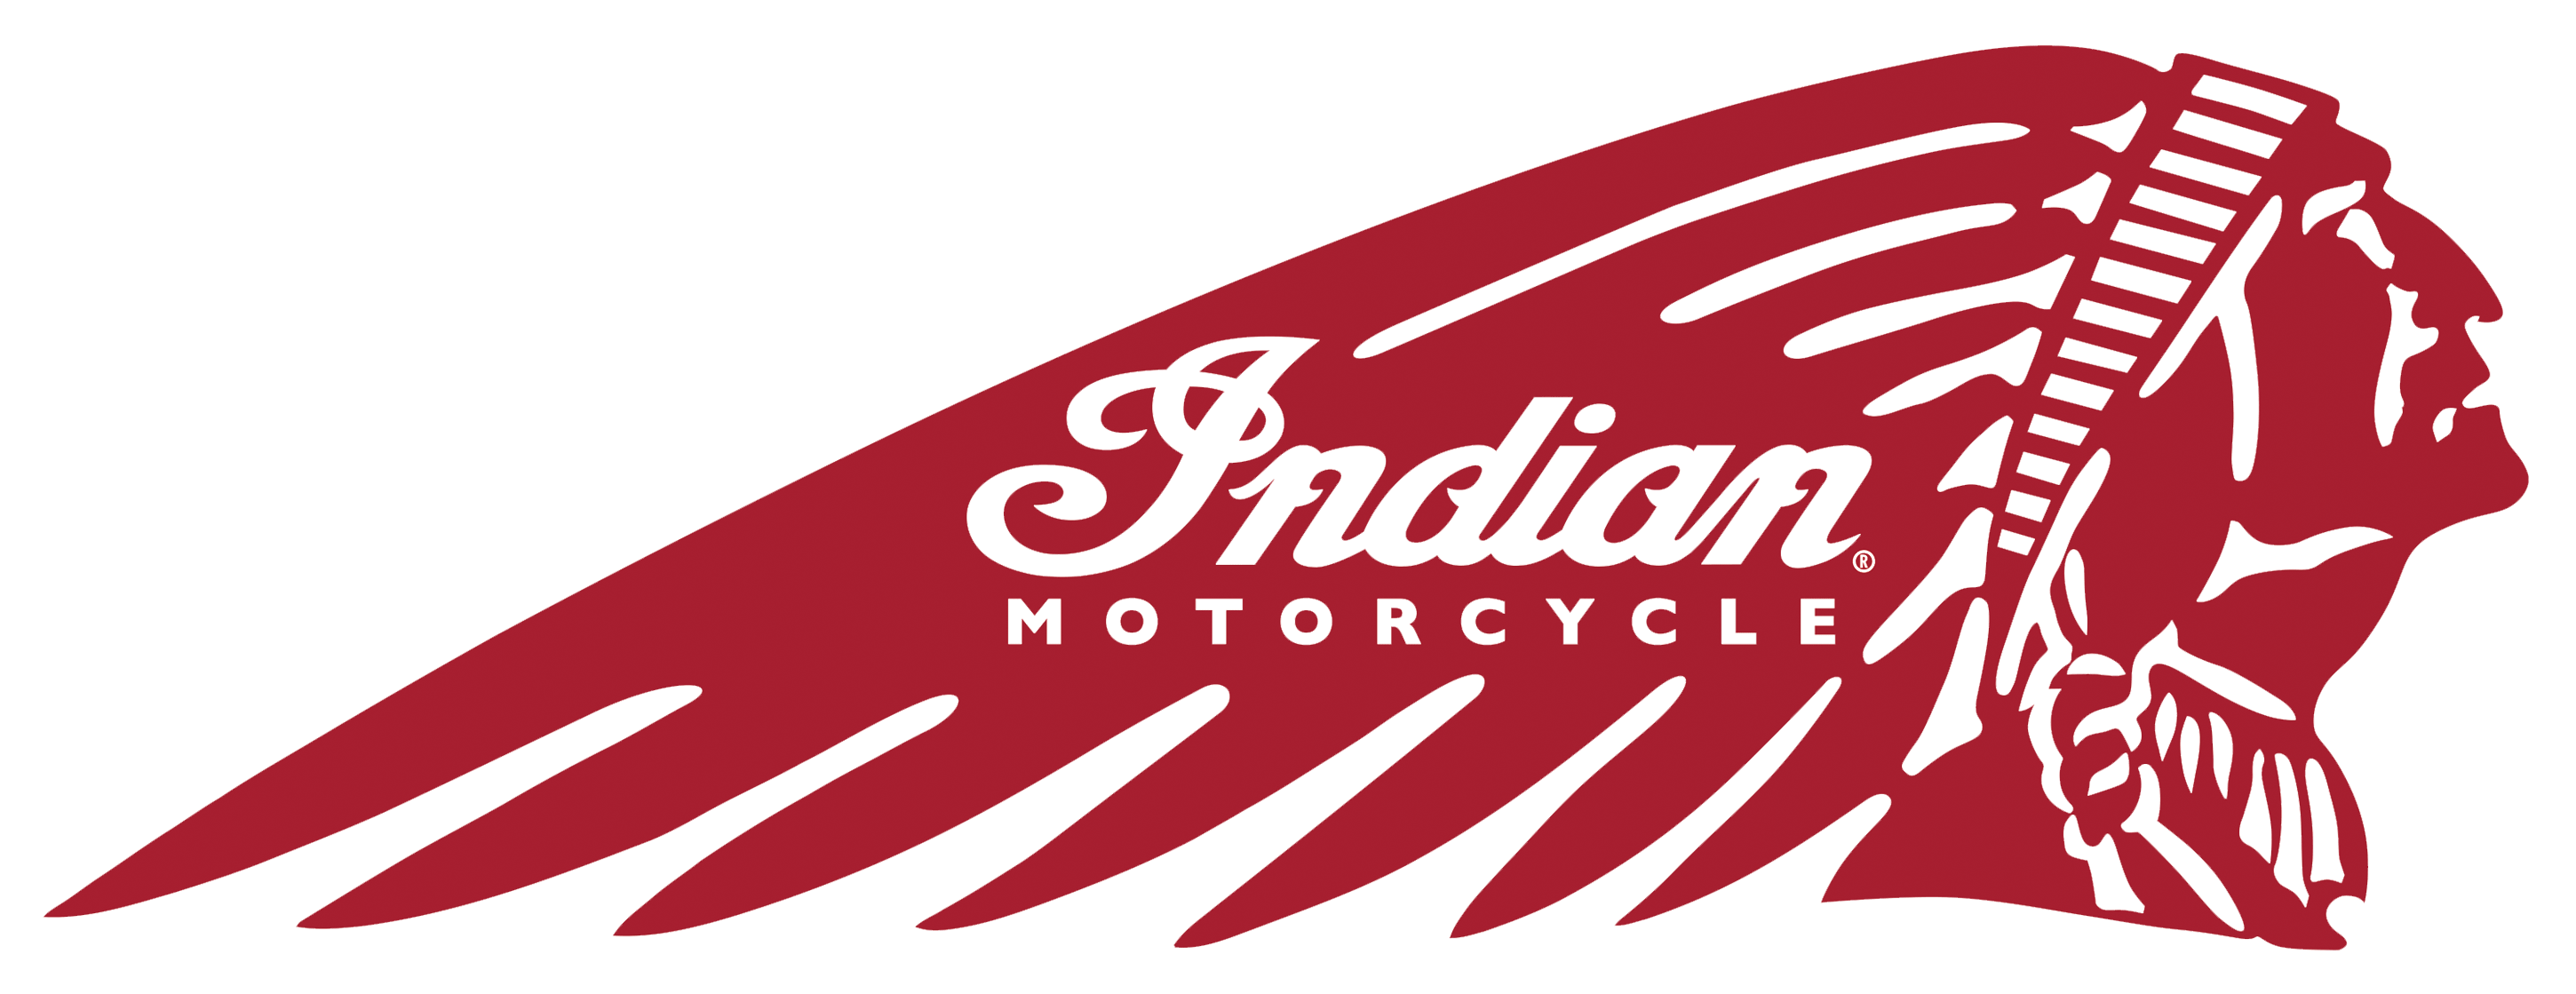 Indian logo | Motorcycle Brands